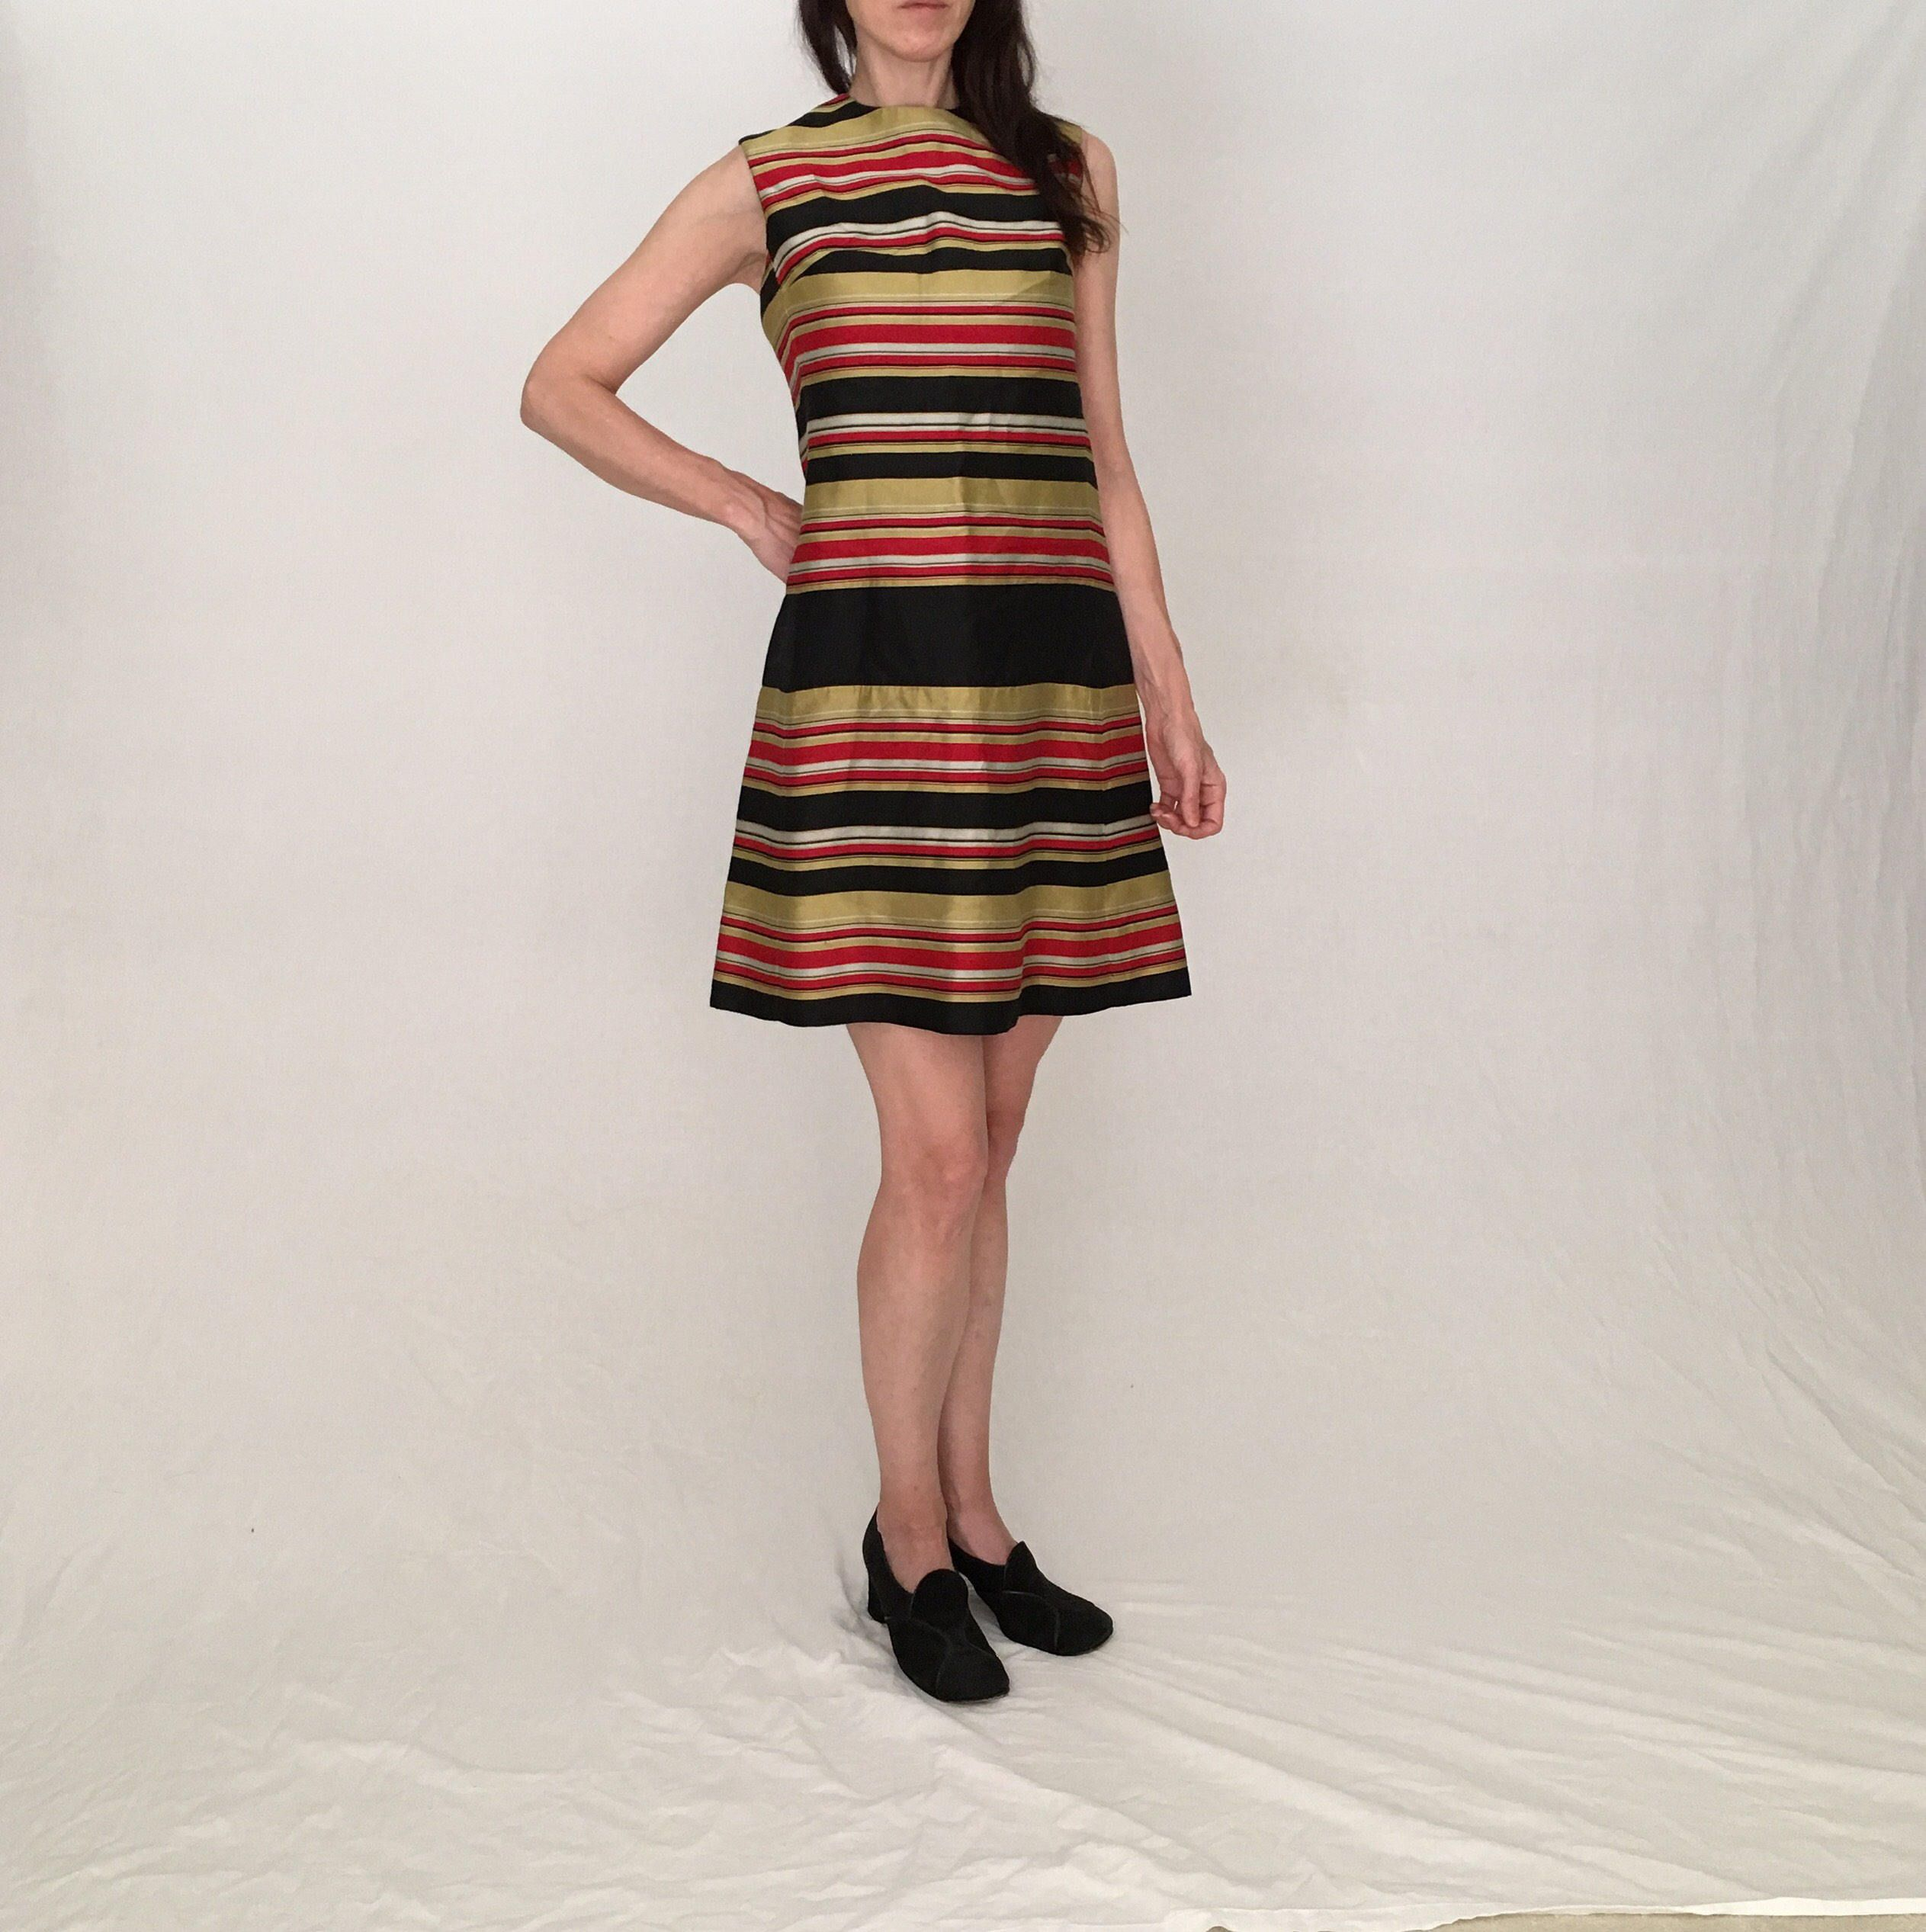 Vintage metallic gold dress 60s Dress women XS red black mod mini 1960s  dress sleeveless red party dress scooter holiday special occasion by  MadCrushVintage ... 00c9aa7c9